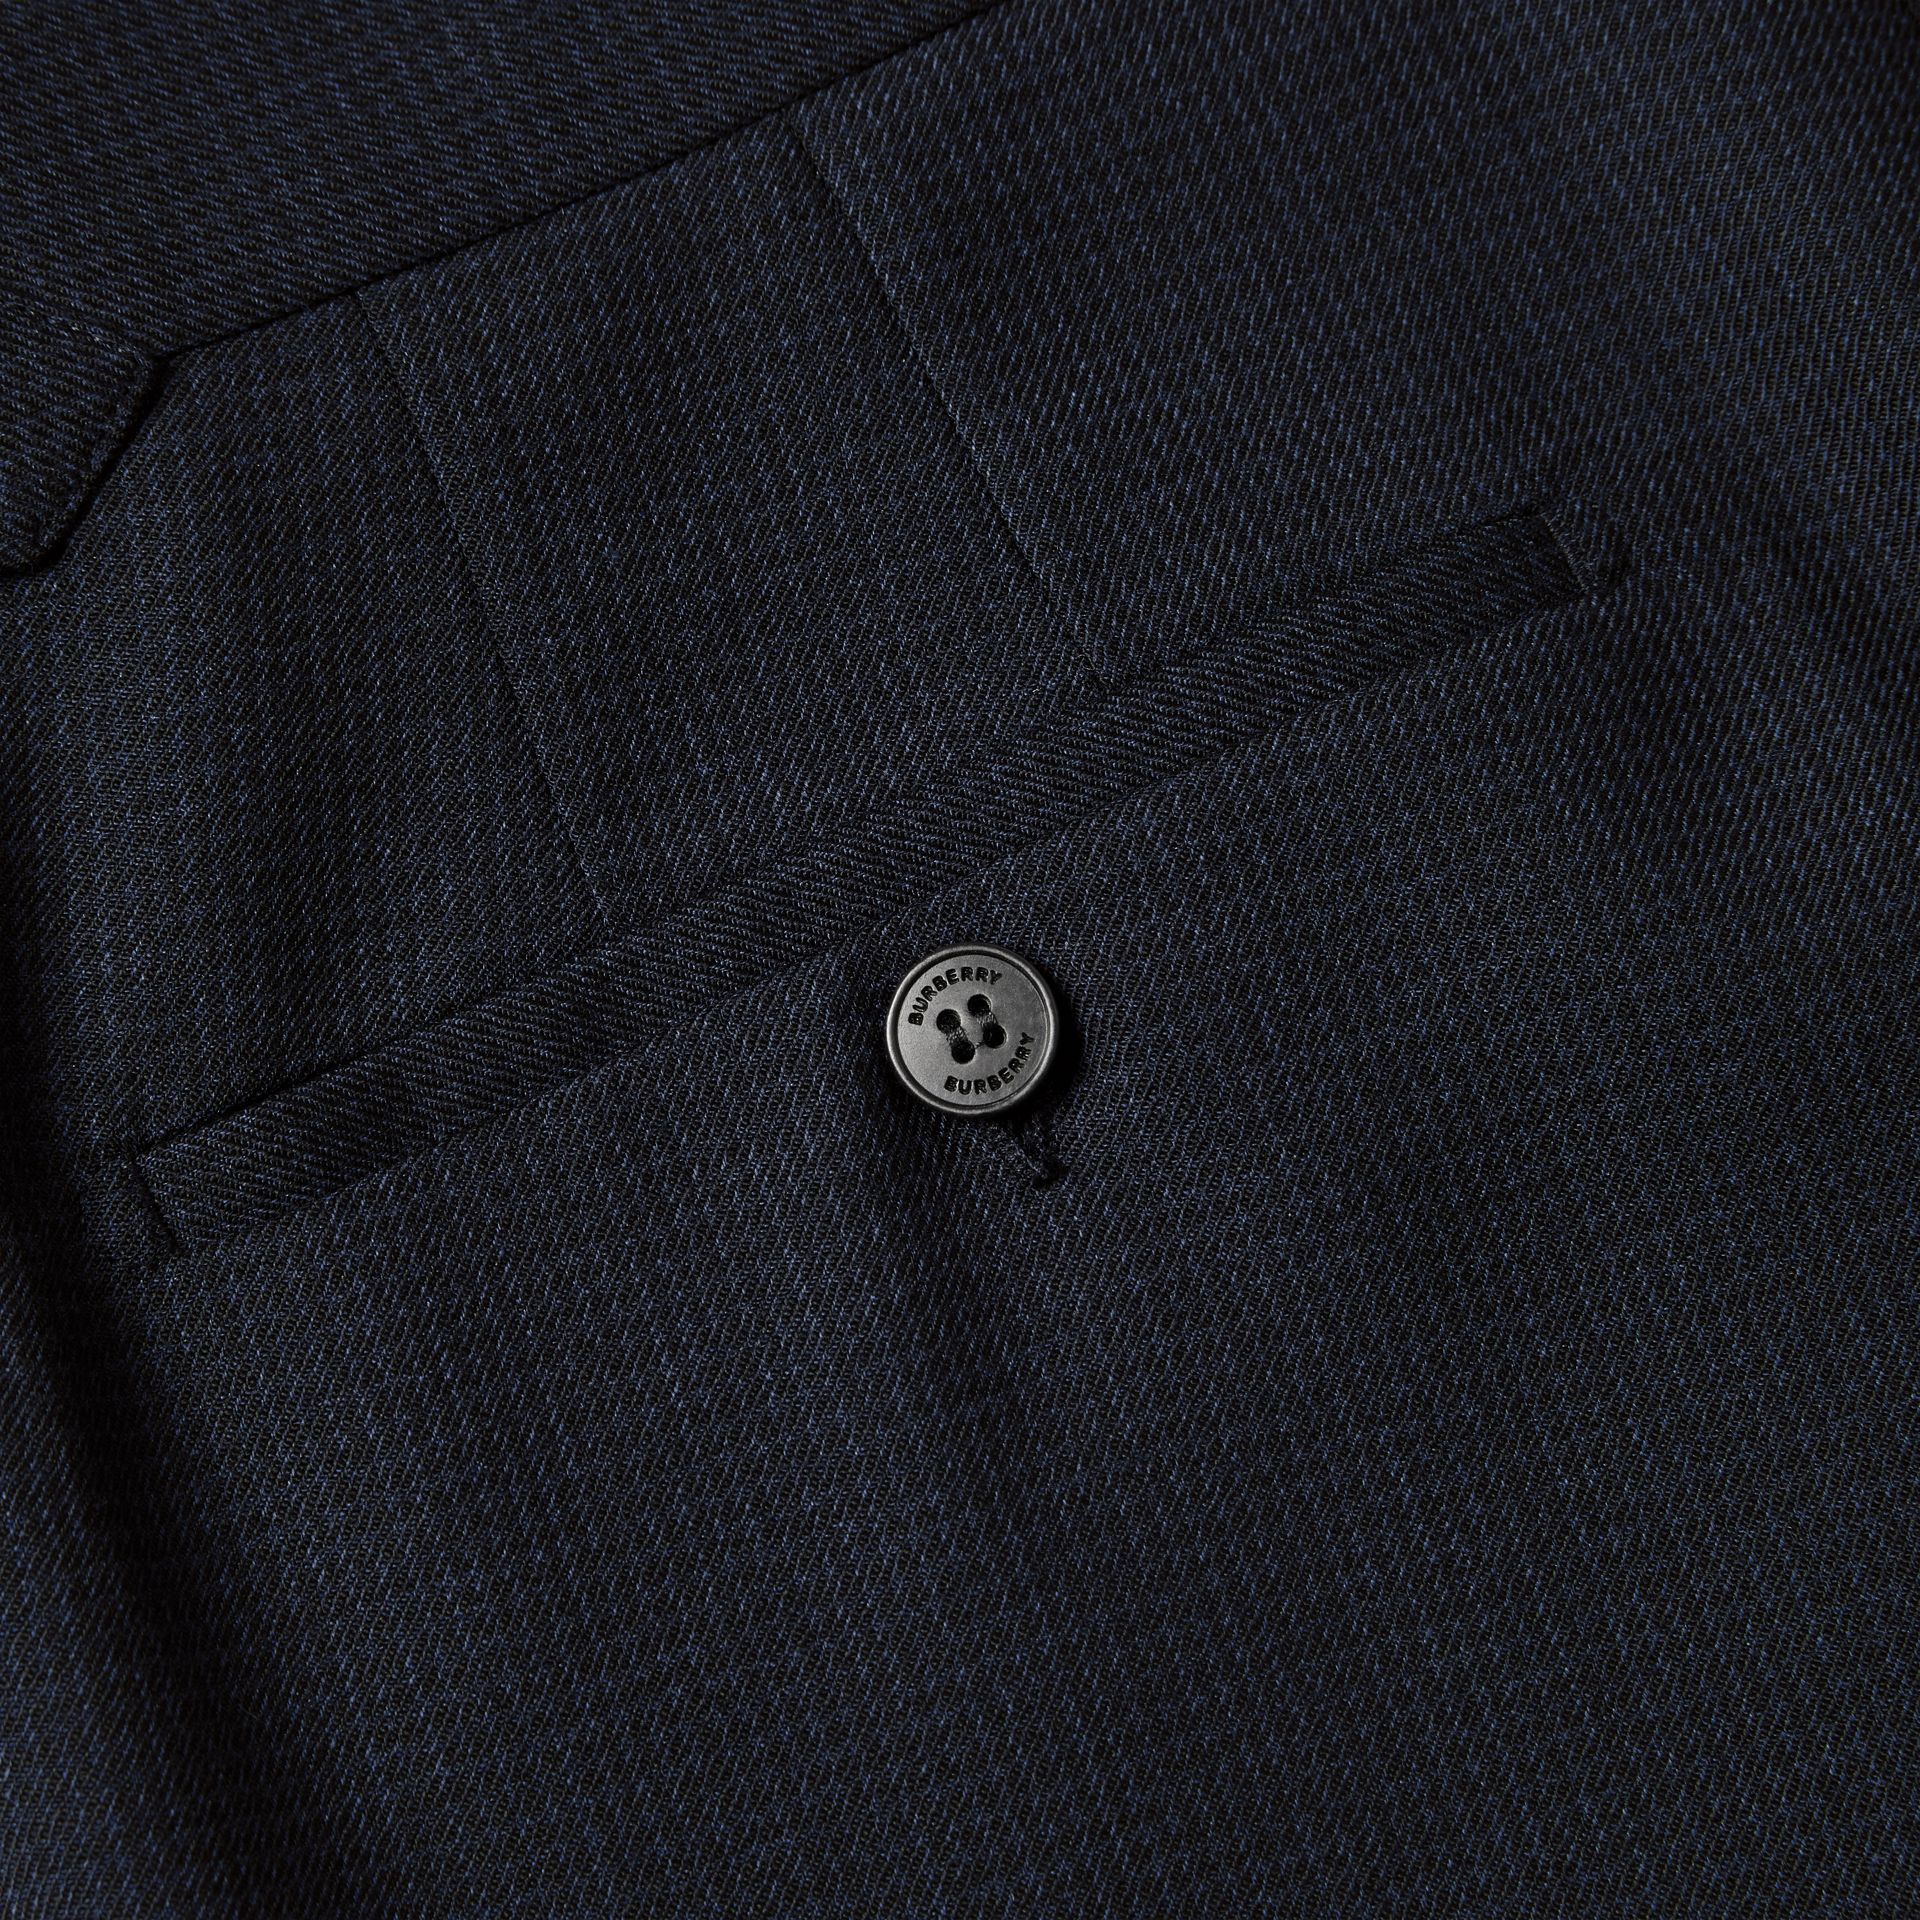 English Fit Puppytooth Check Wool Suit in Dark Navy - Men | Burberry Singapore - gallery image 9